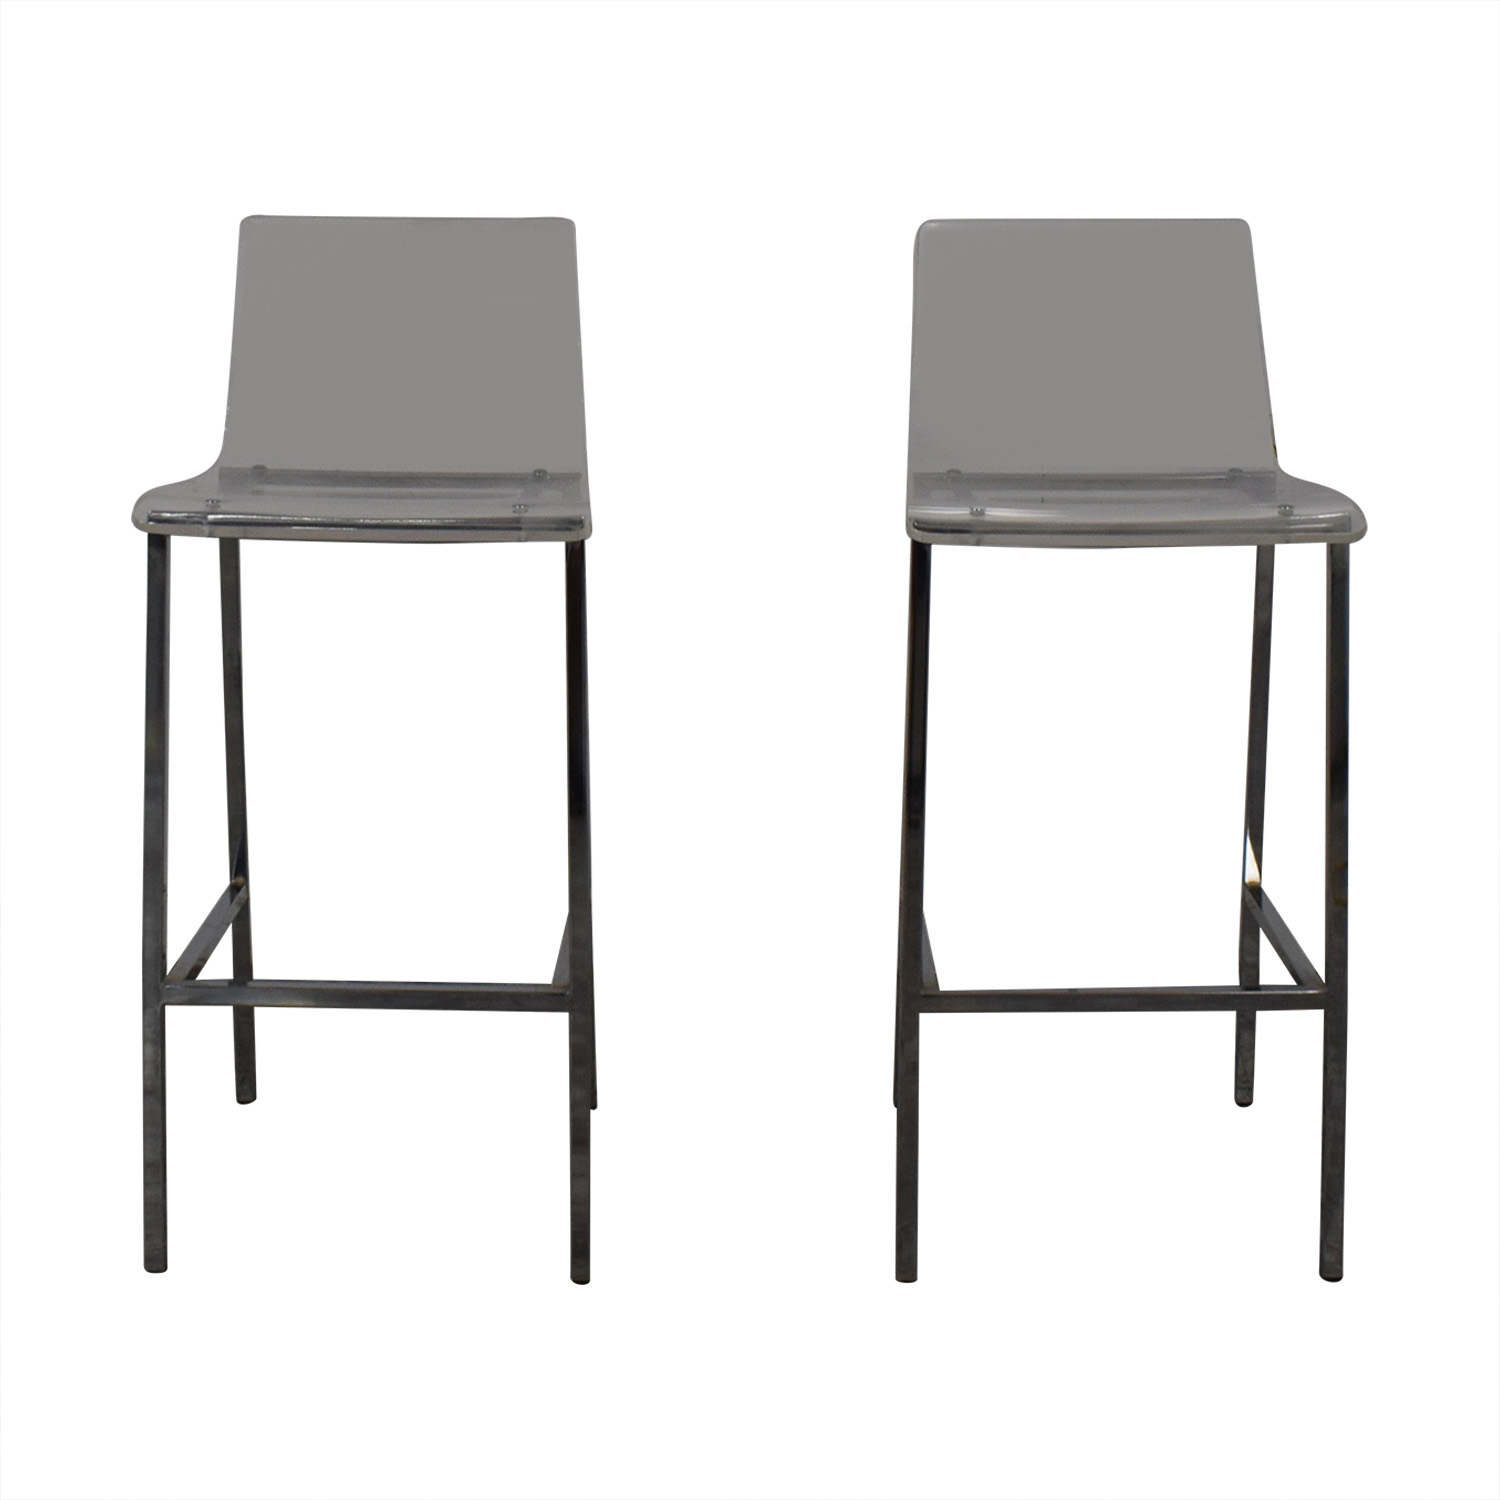 CB2 CB2 Bar Stools for sale